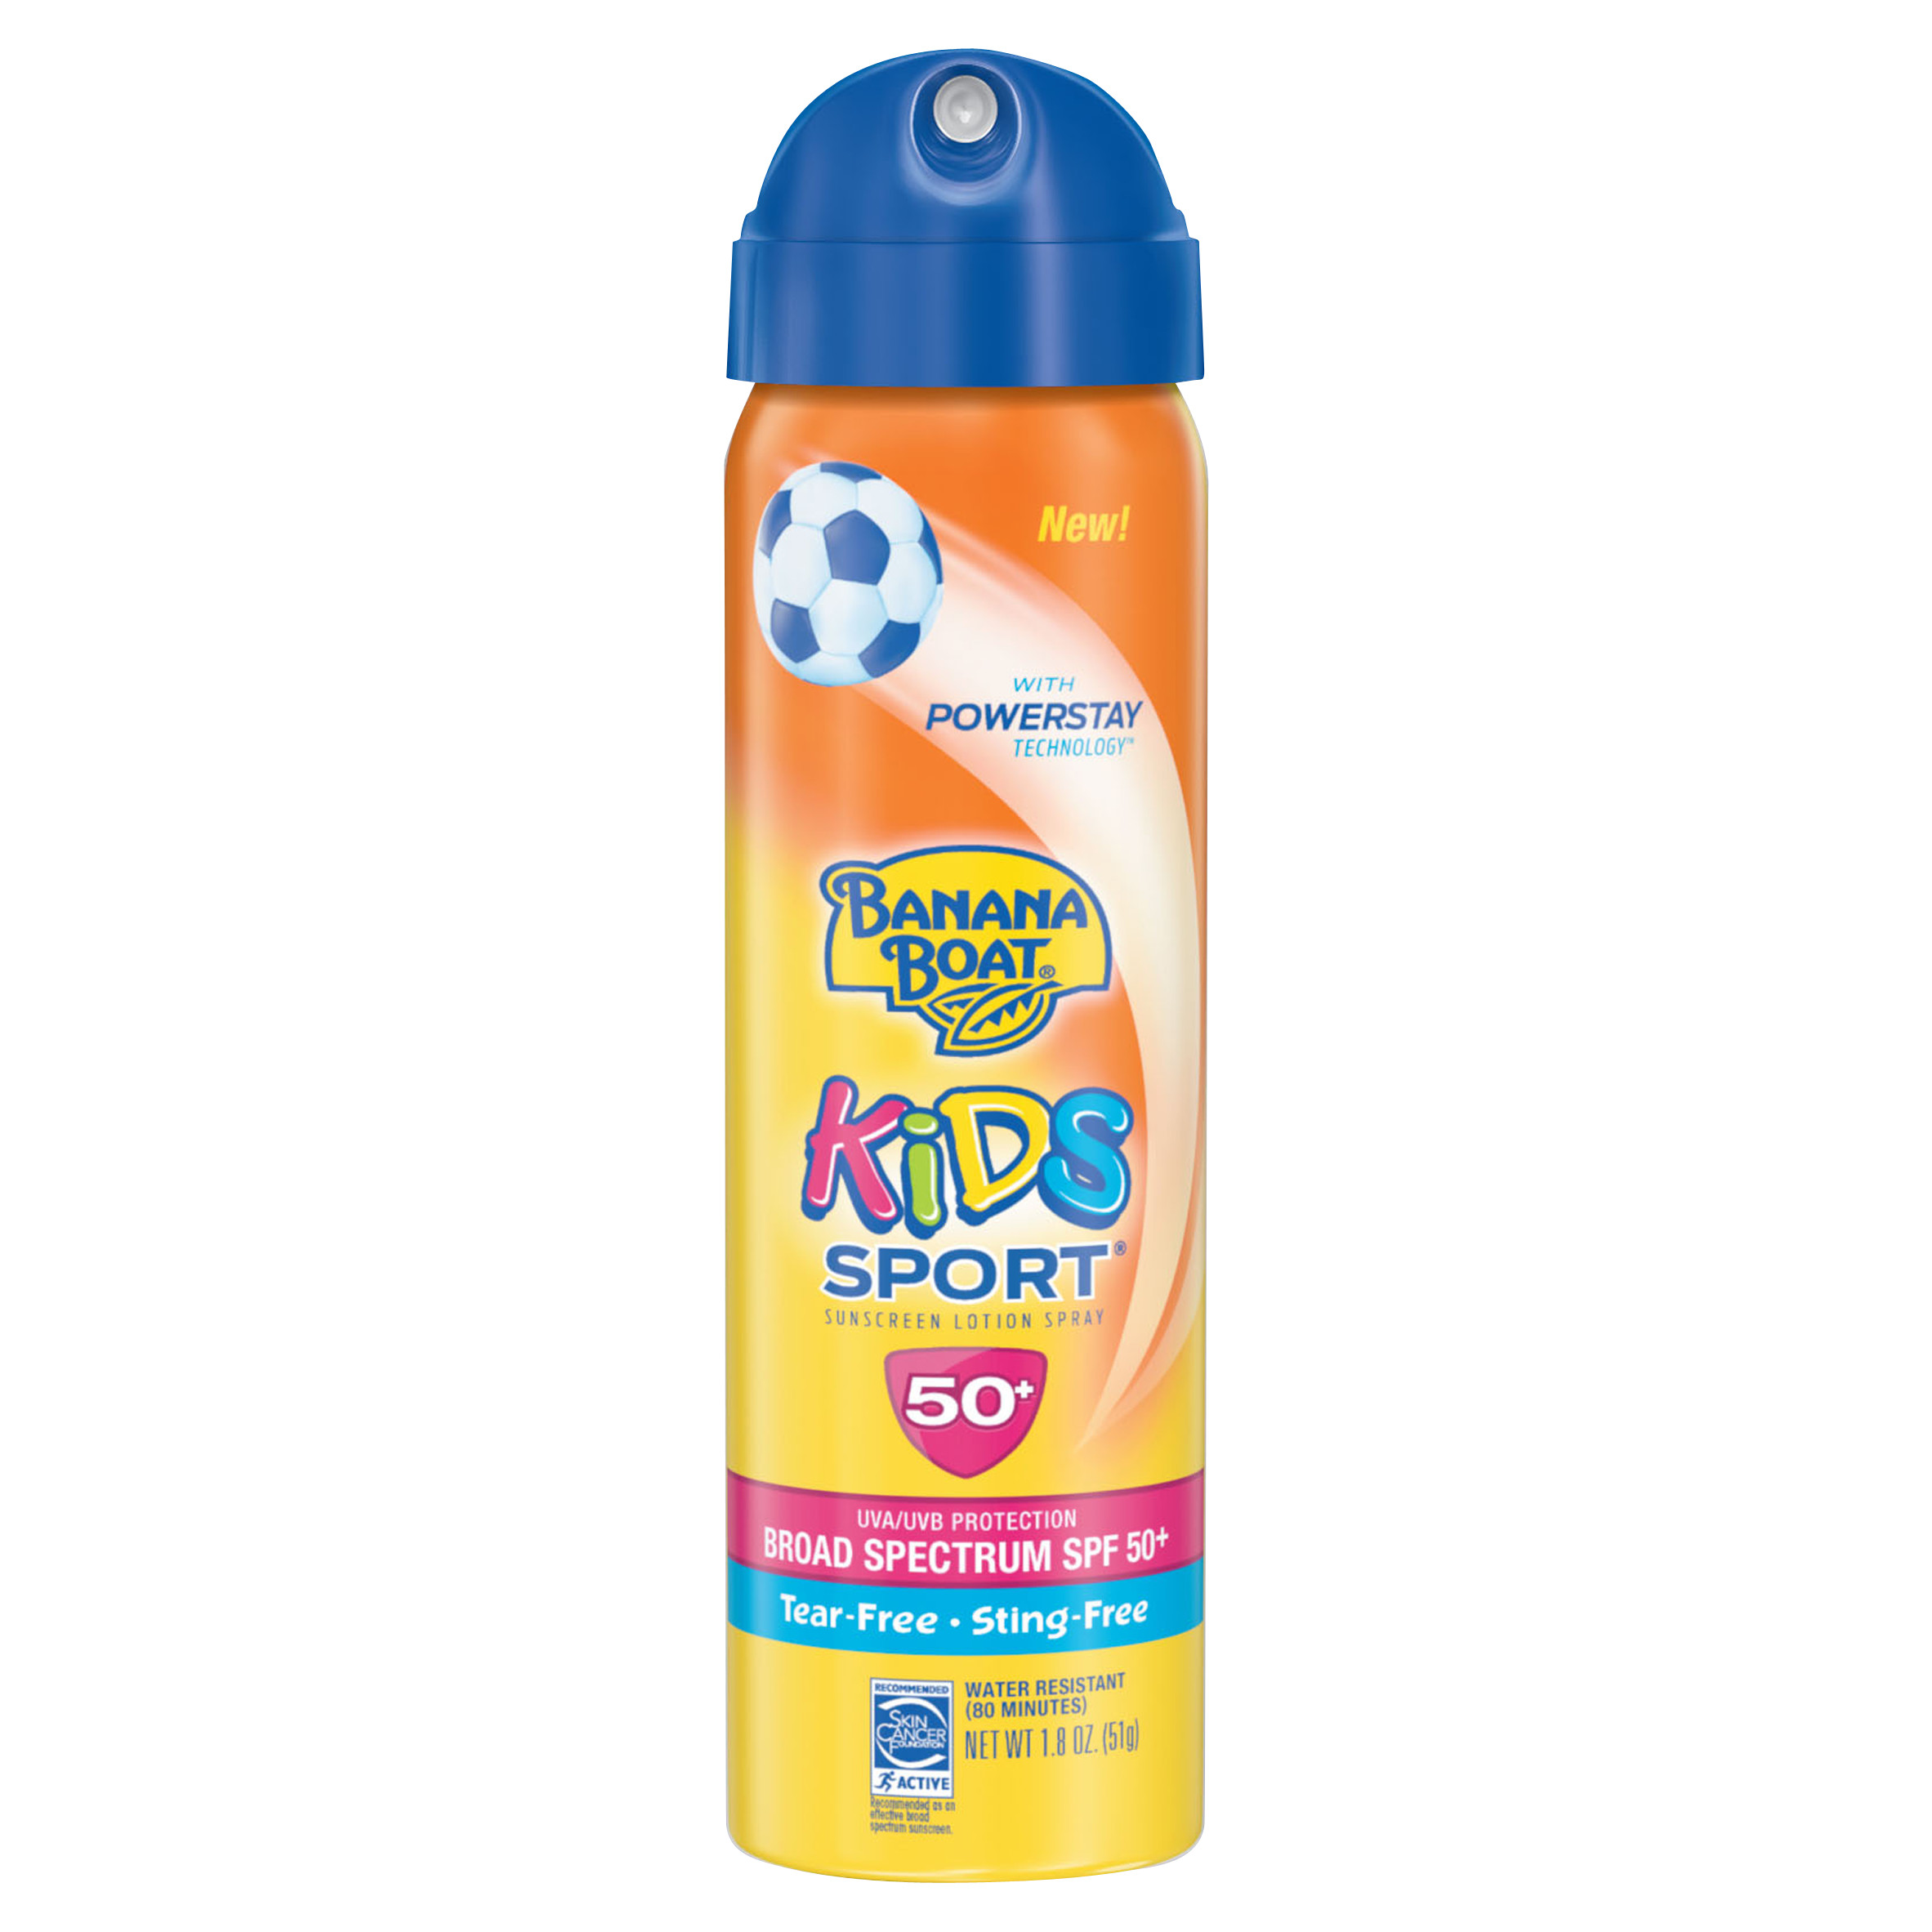 Banana Boat Kids Sport Tear-Free, Sting-Free Broad Spectrum Sunscreen Lotion Spray, SPF 50+ - 1.8 Ounces